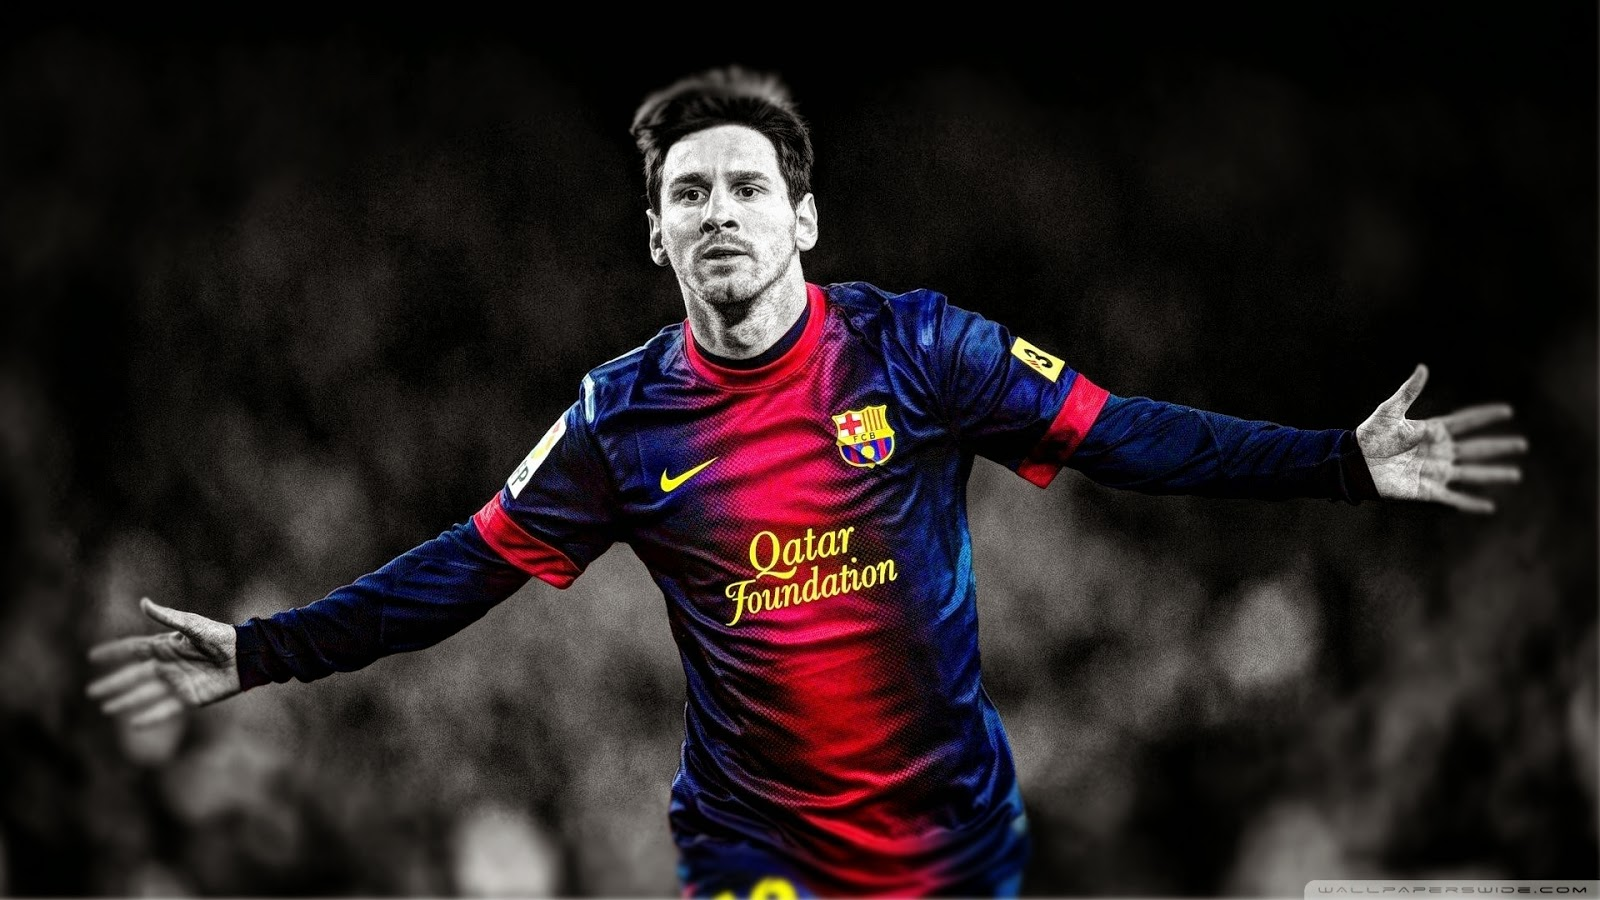 lionel2Bmessi2Bwallpaper Top 10 Lionel Messi 2015 Wallpapers 1600x900